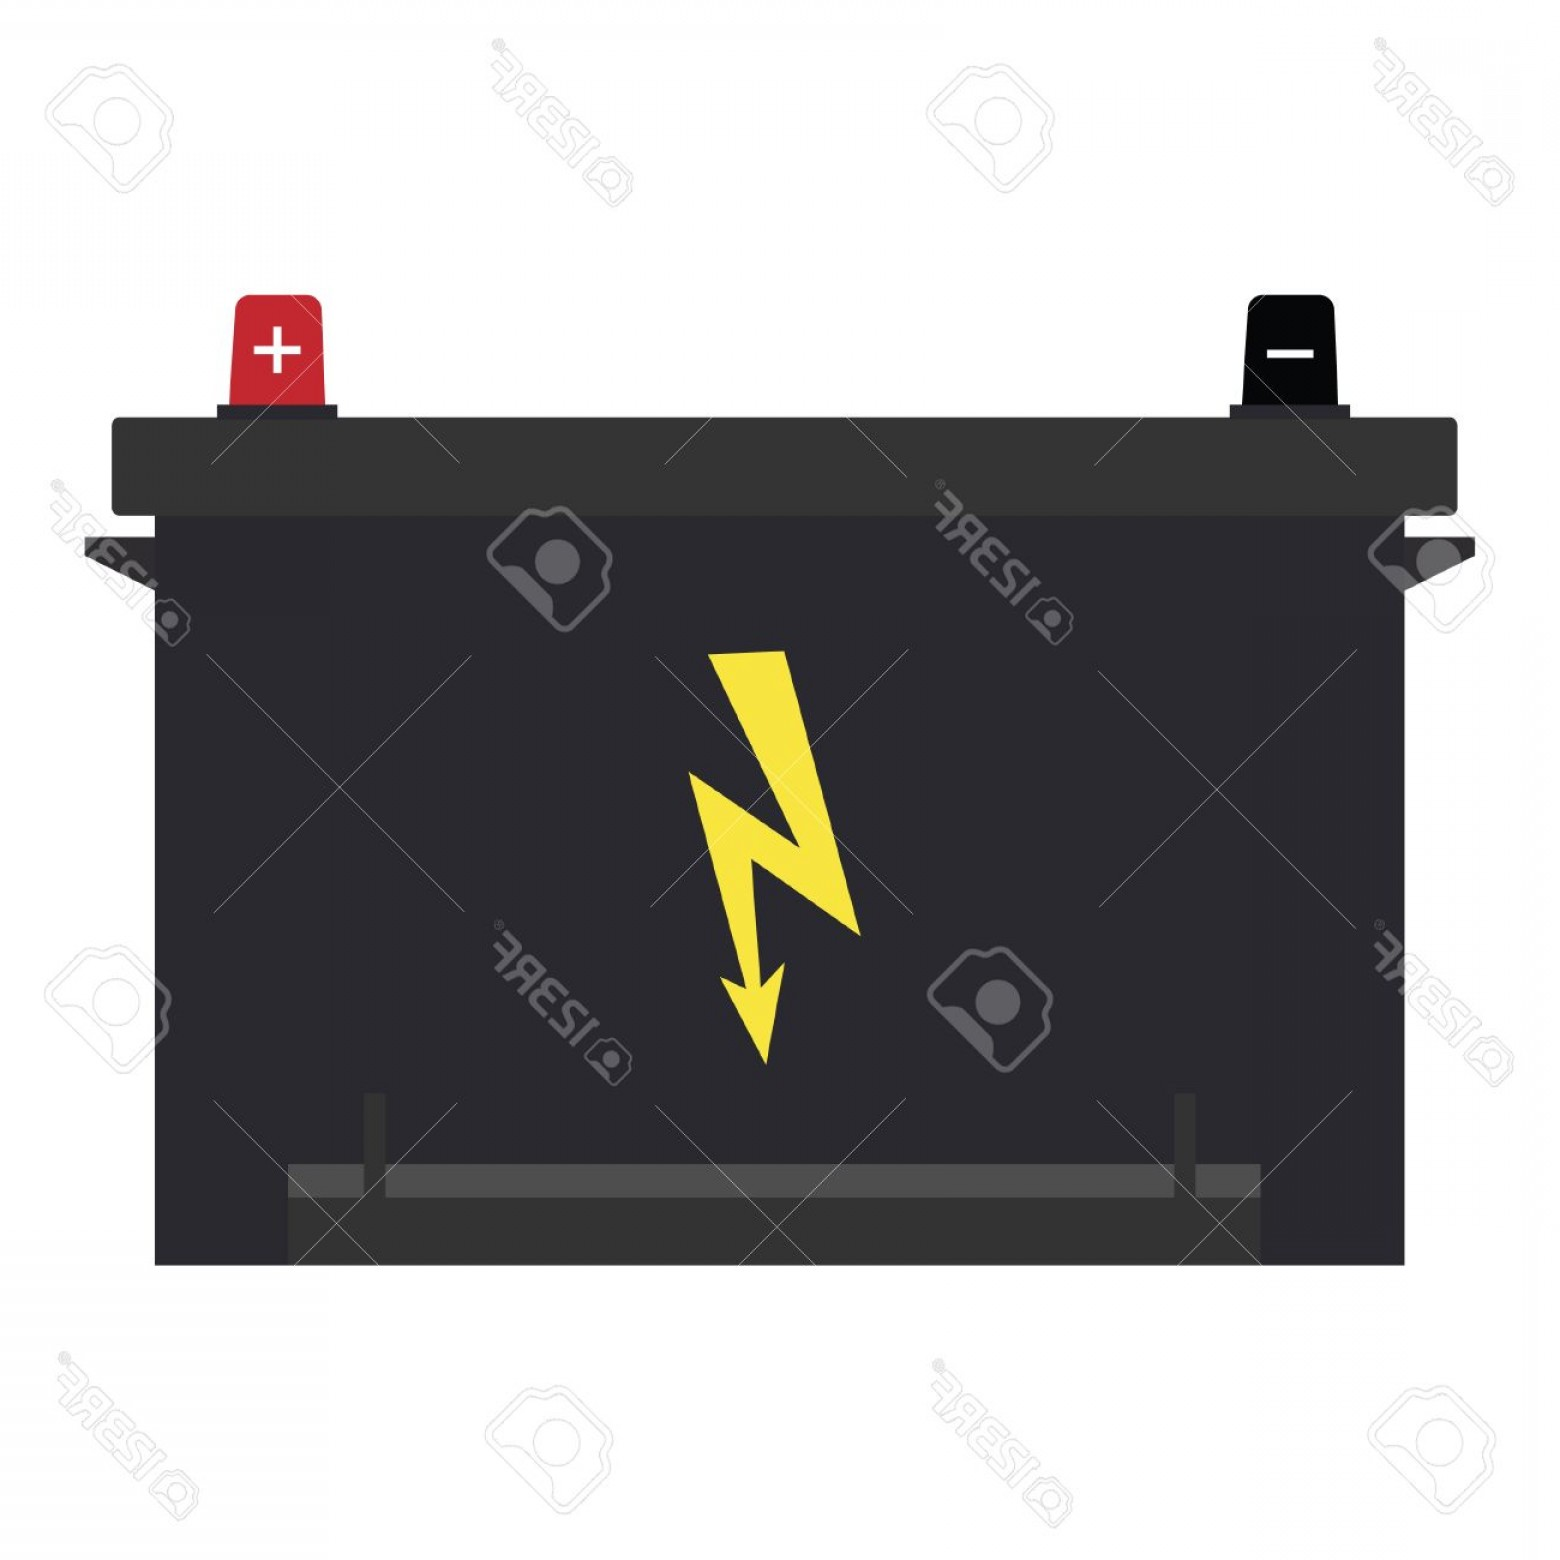 Vector Battery Charger Parts: Photostock Vector Vector Illustration Of Car Battery With Lightning Symbol Car Parts Car Battery Icon